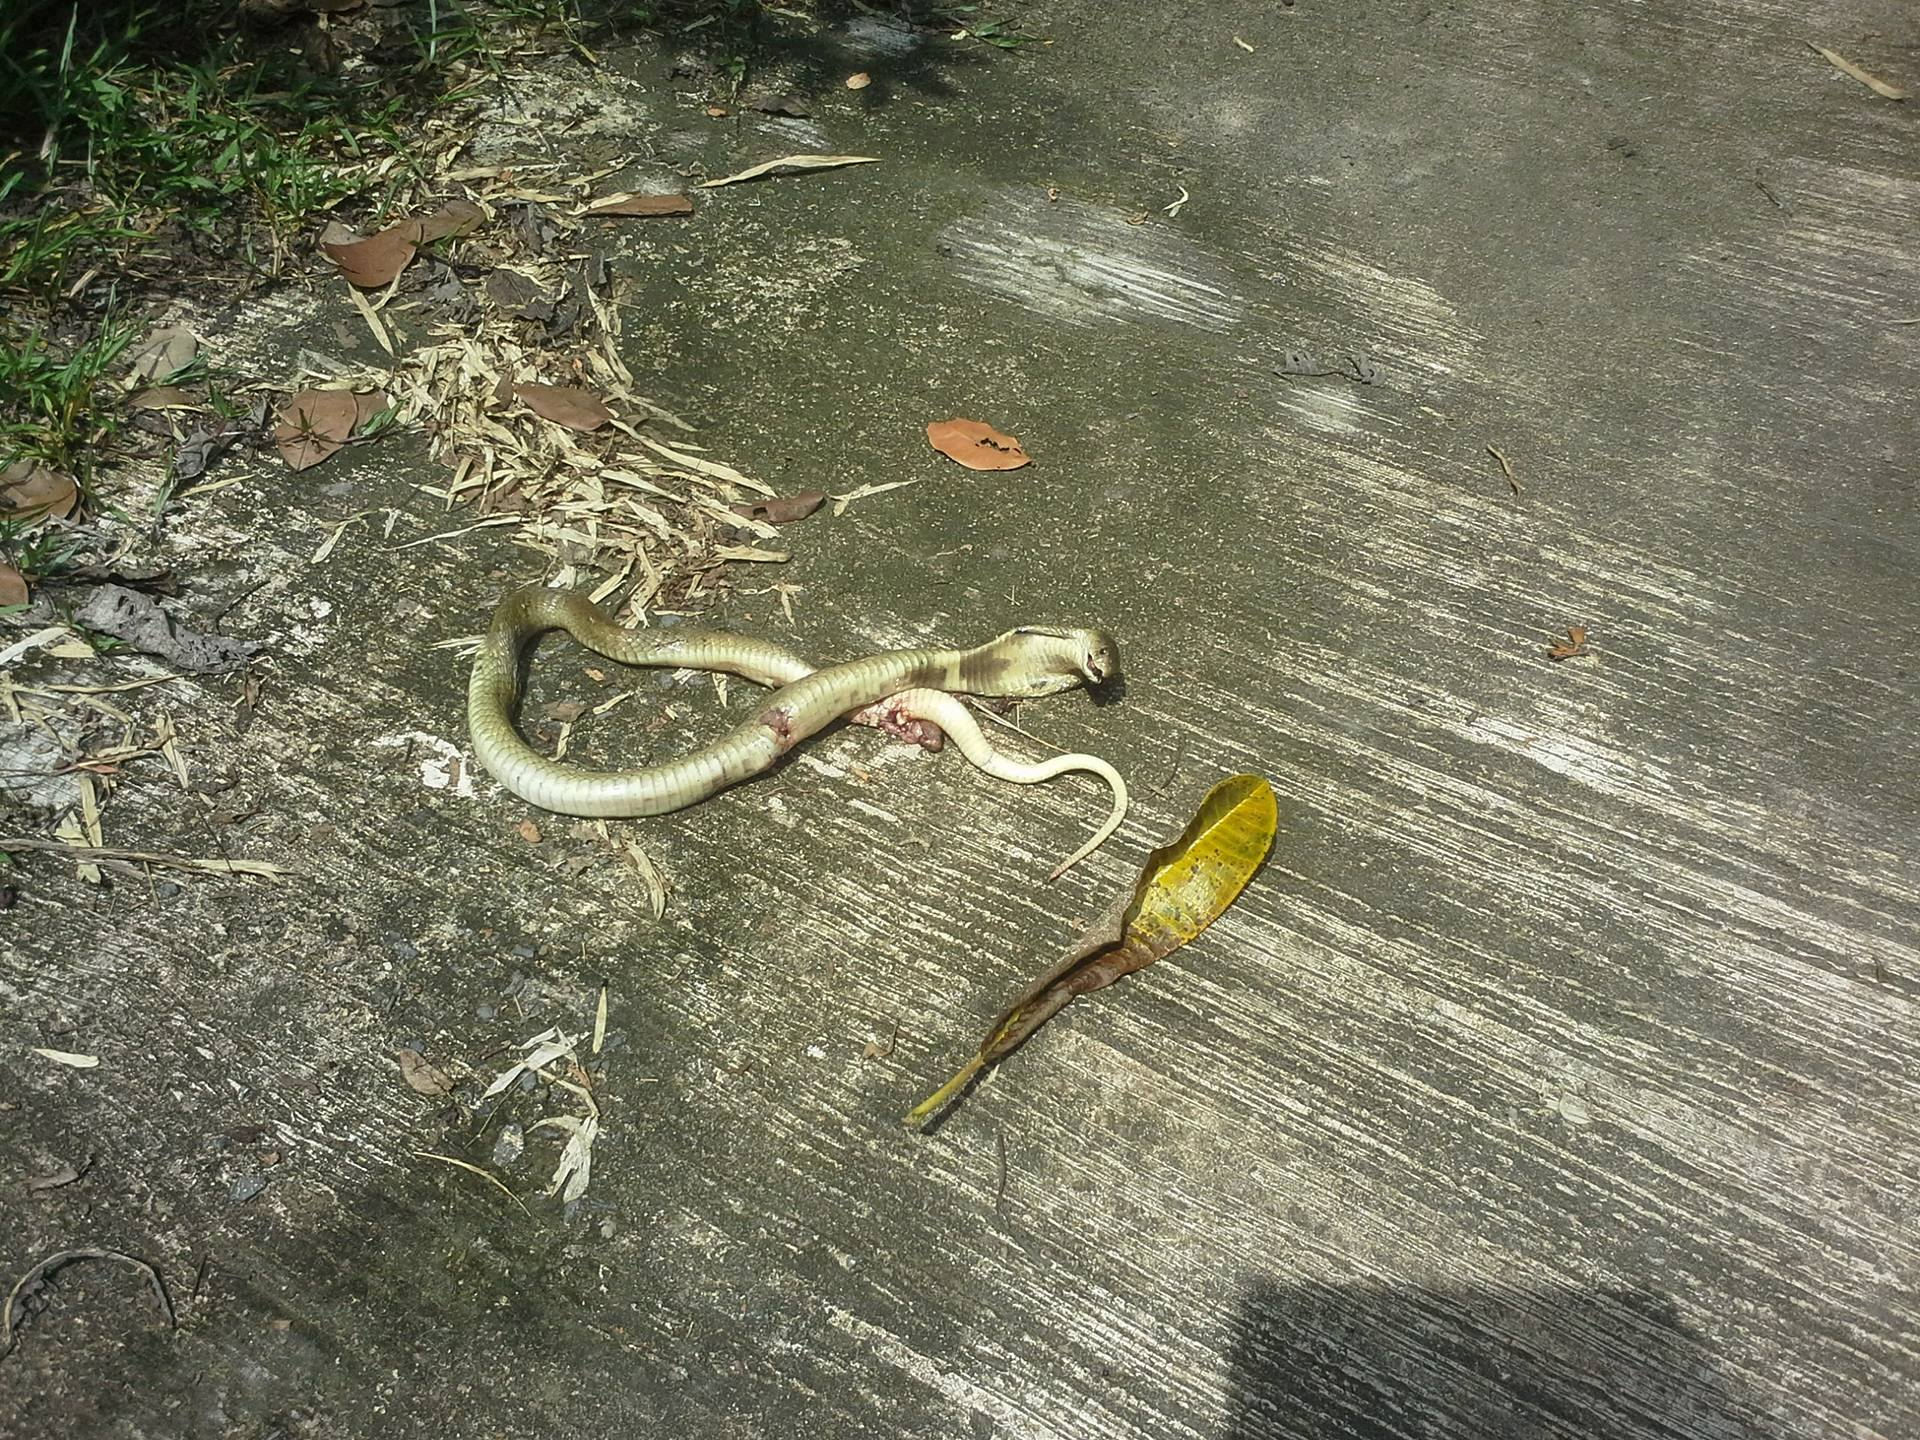 Dead monocled cobra after Thai hit it with shovel.